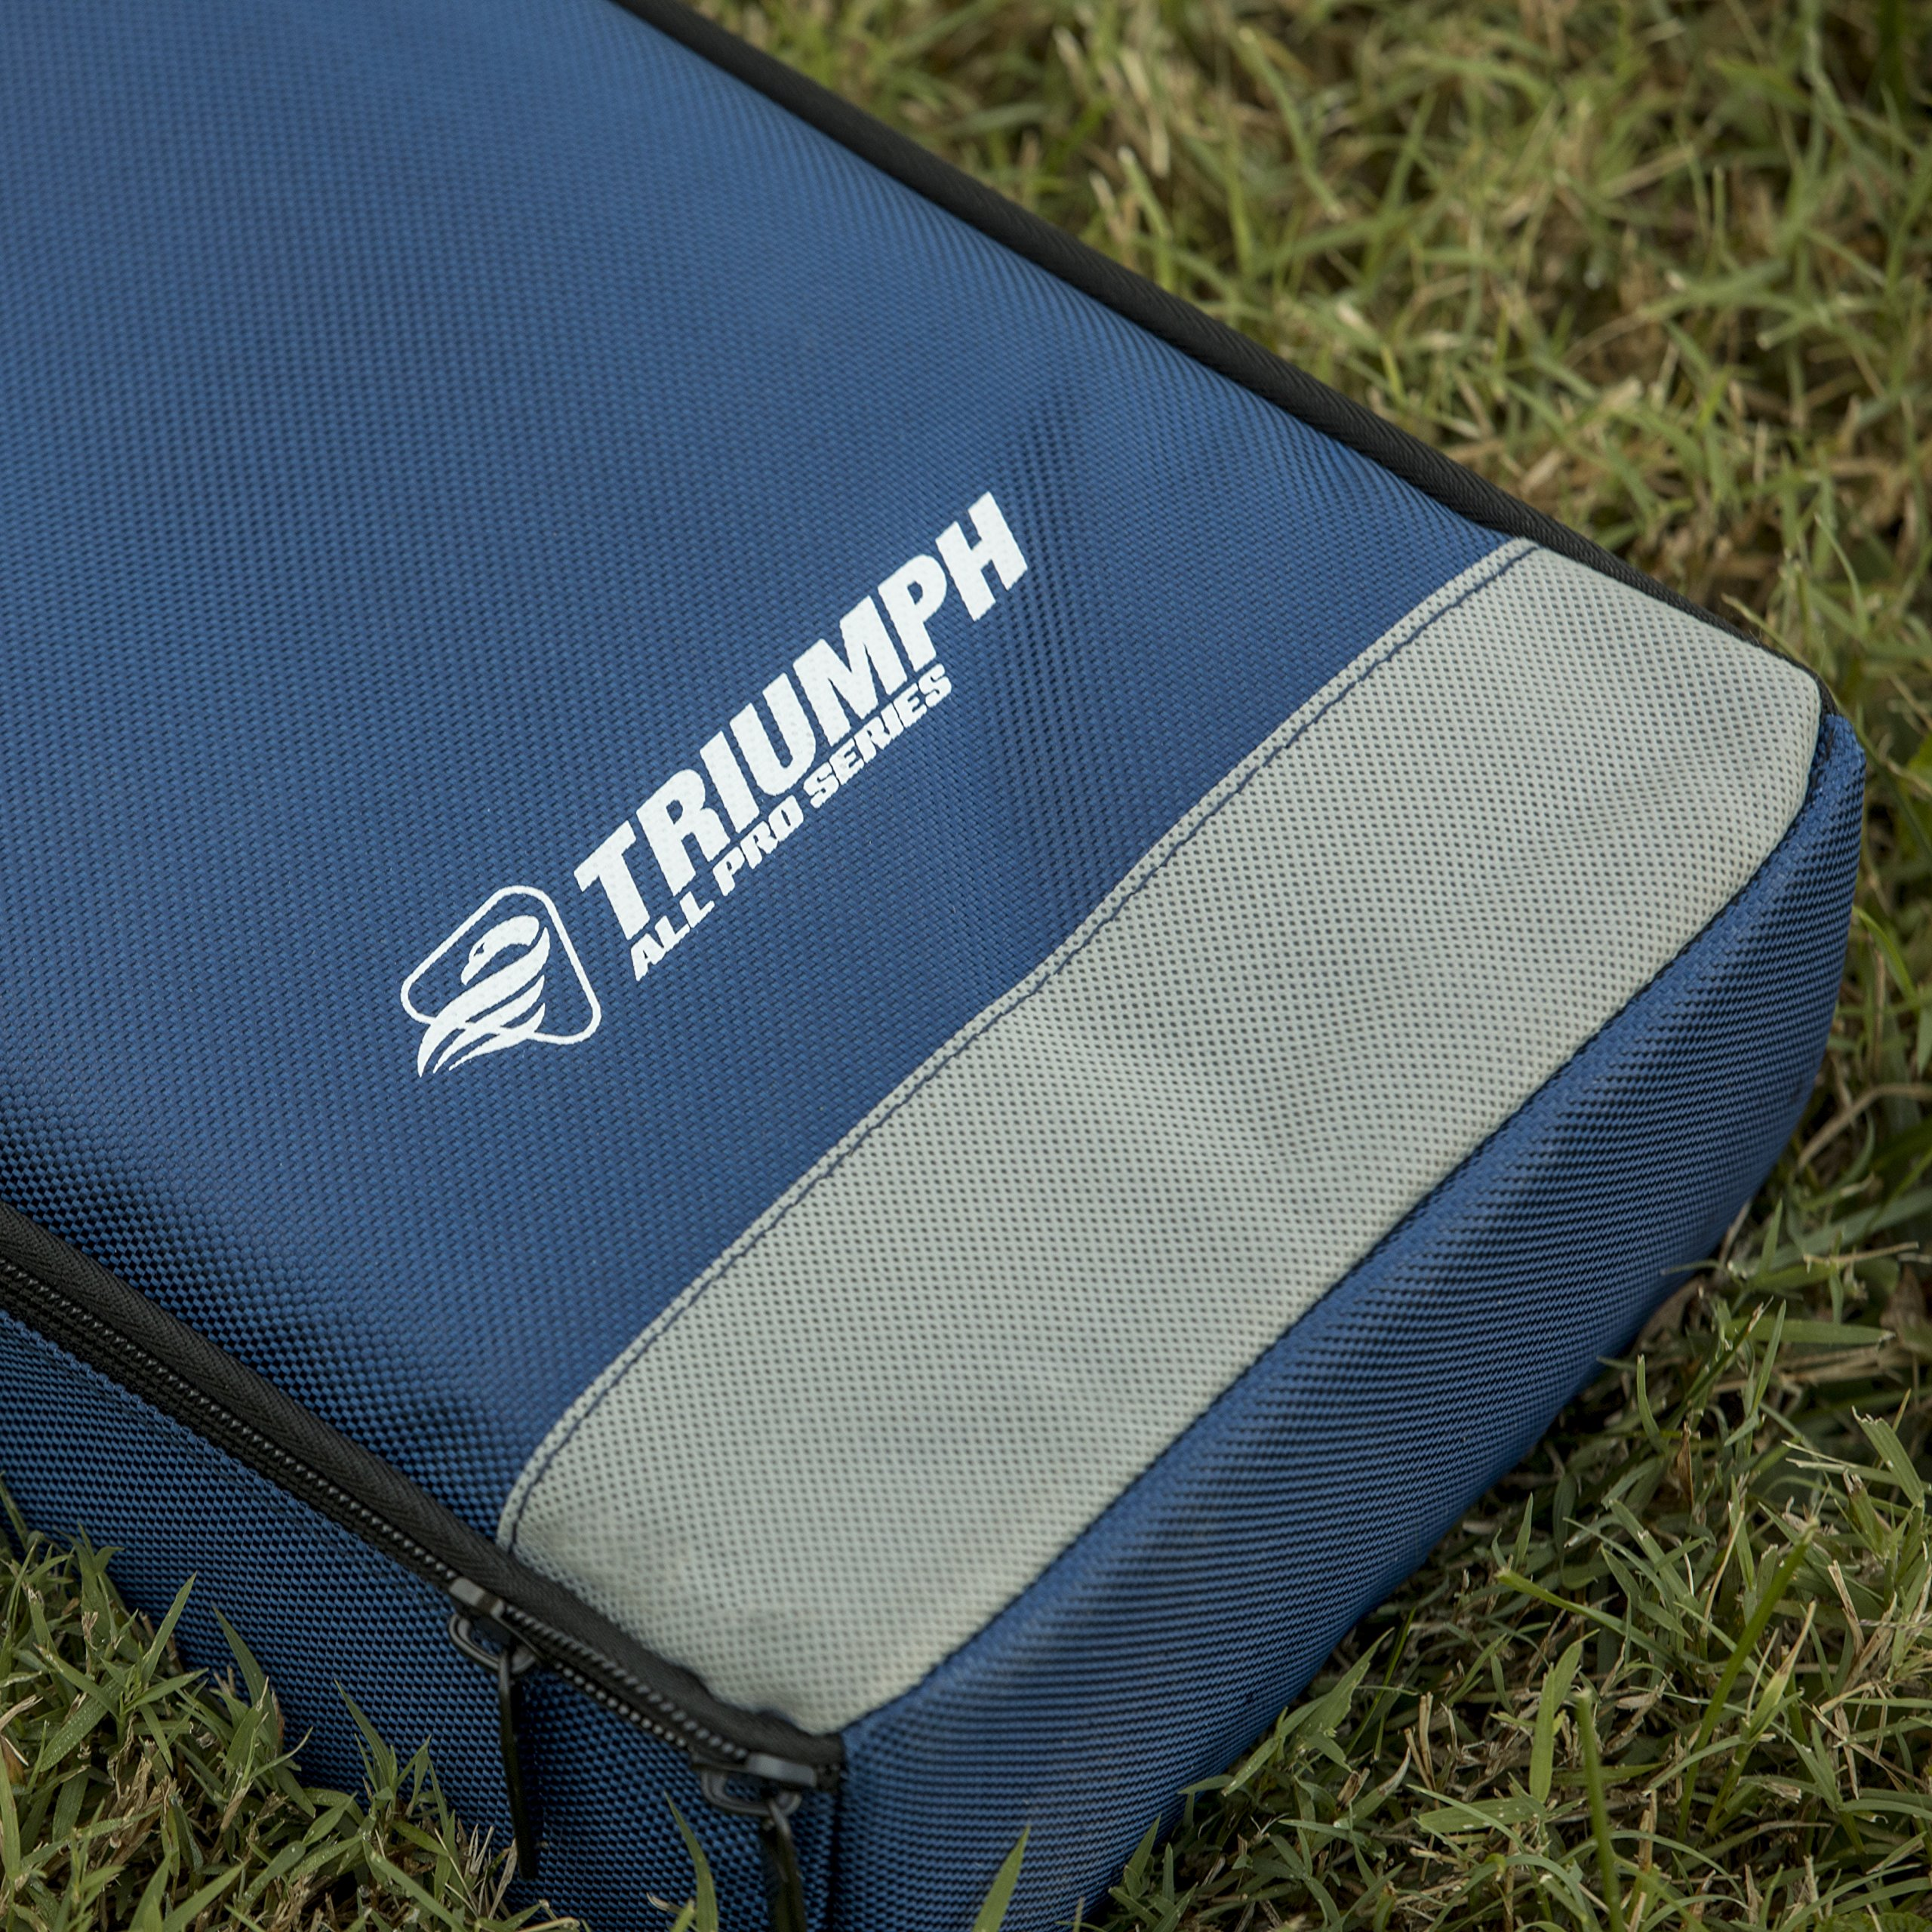 Triumph All Pro 100mm Bocce Set Includes Eight Bocce Balls, One 50mm Jack, and Carry Bag by Triumph Sports (Image #11)